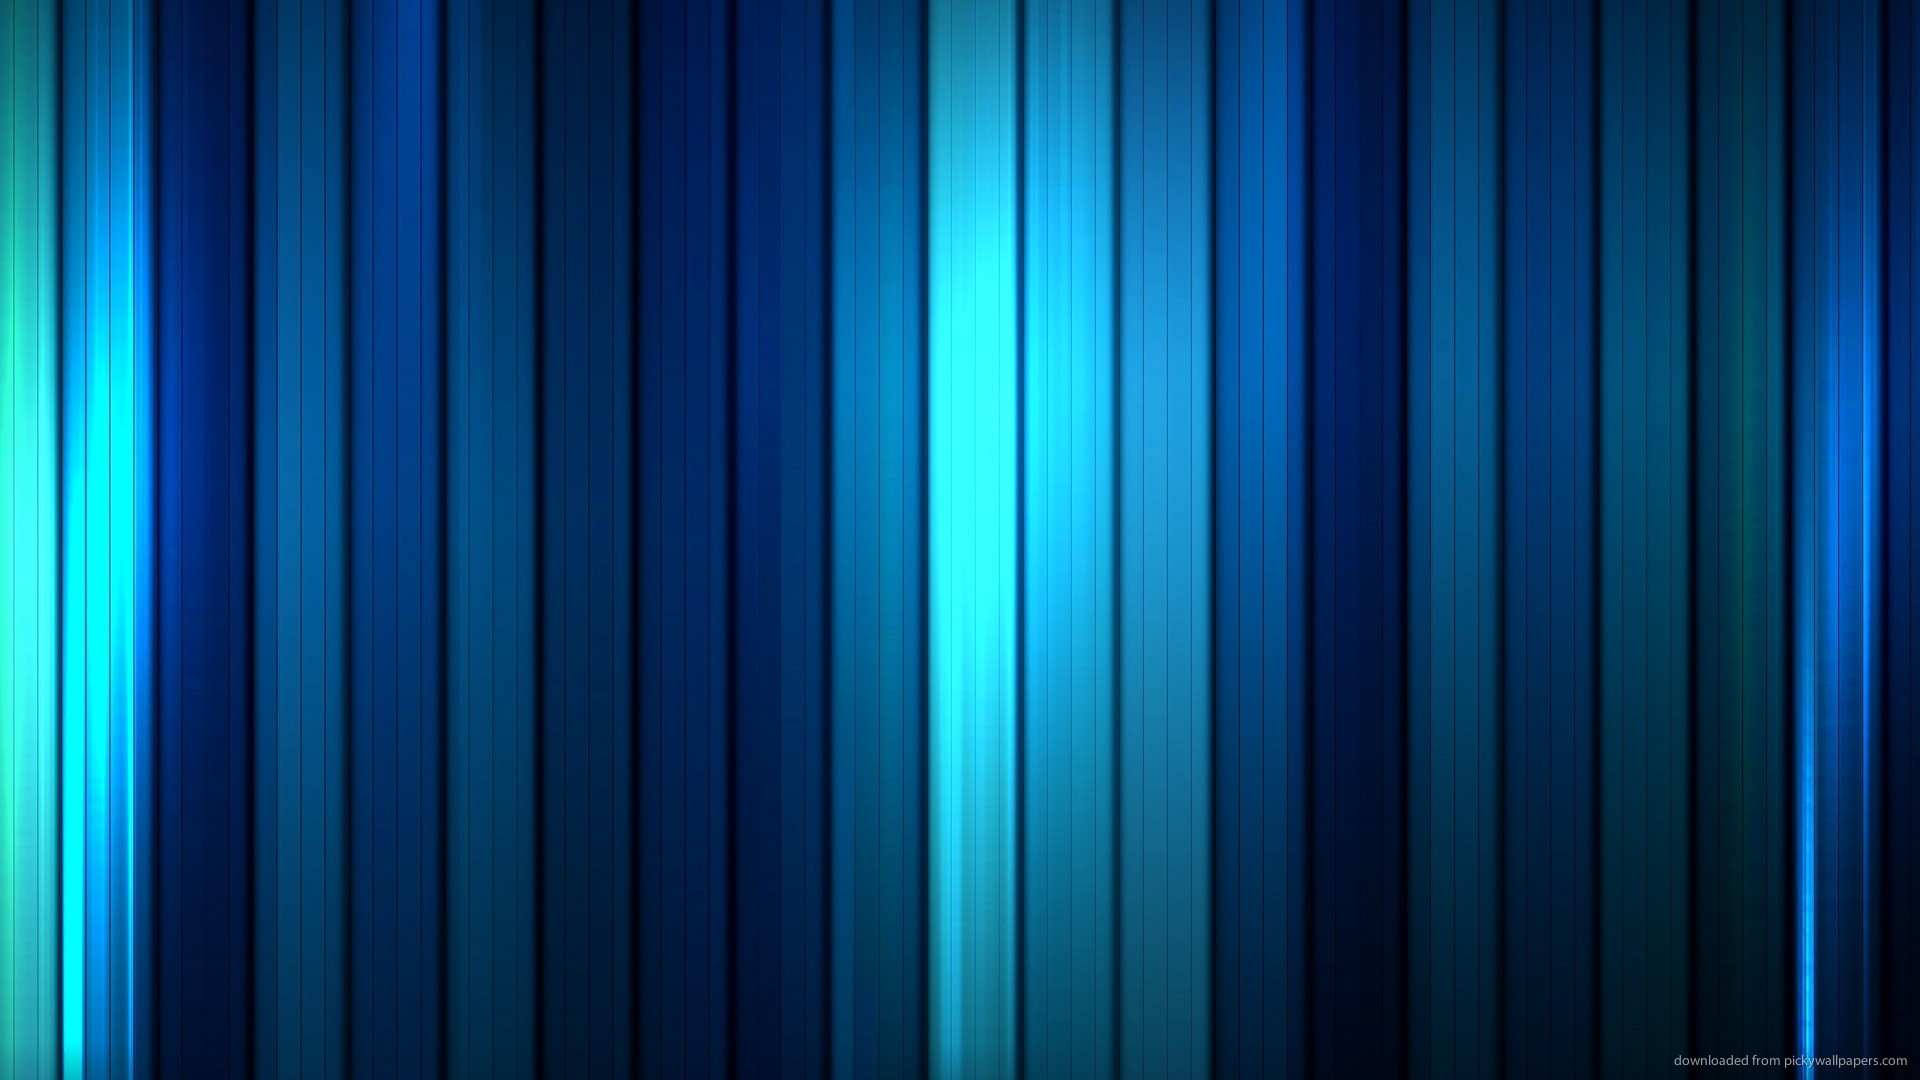 1920x1080 Blue Motion Stripes for